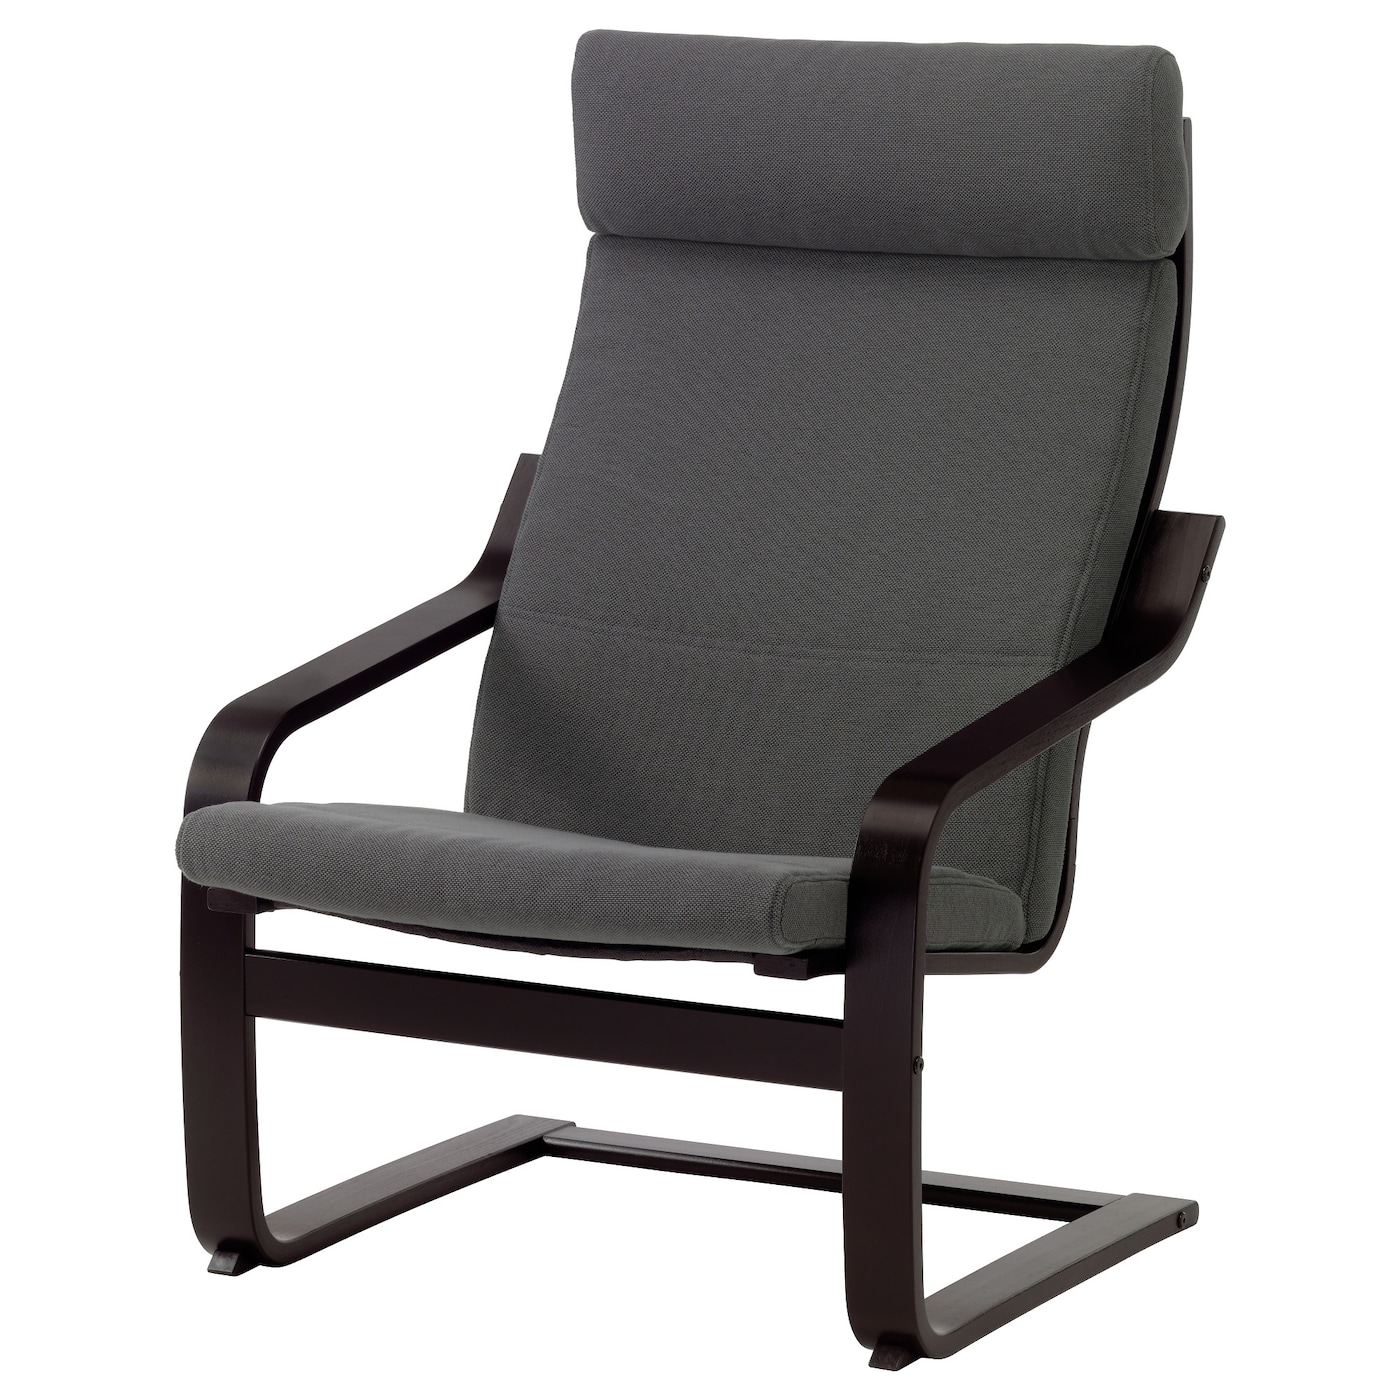 Po ng armchair black brown finnsta grey ikea for Grey comfy chair